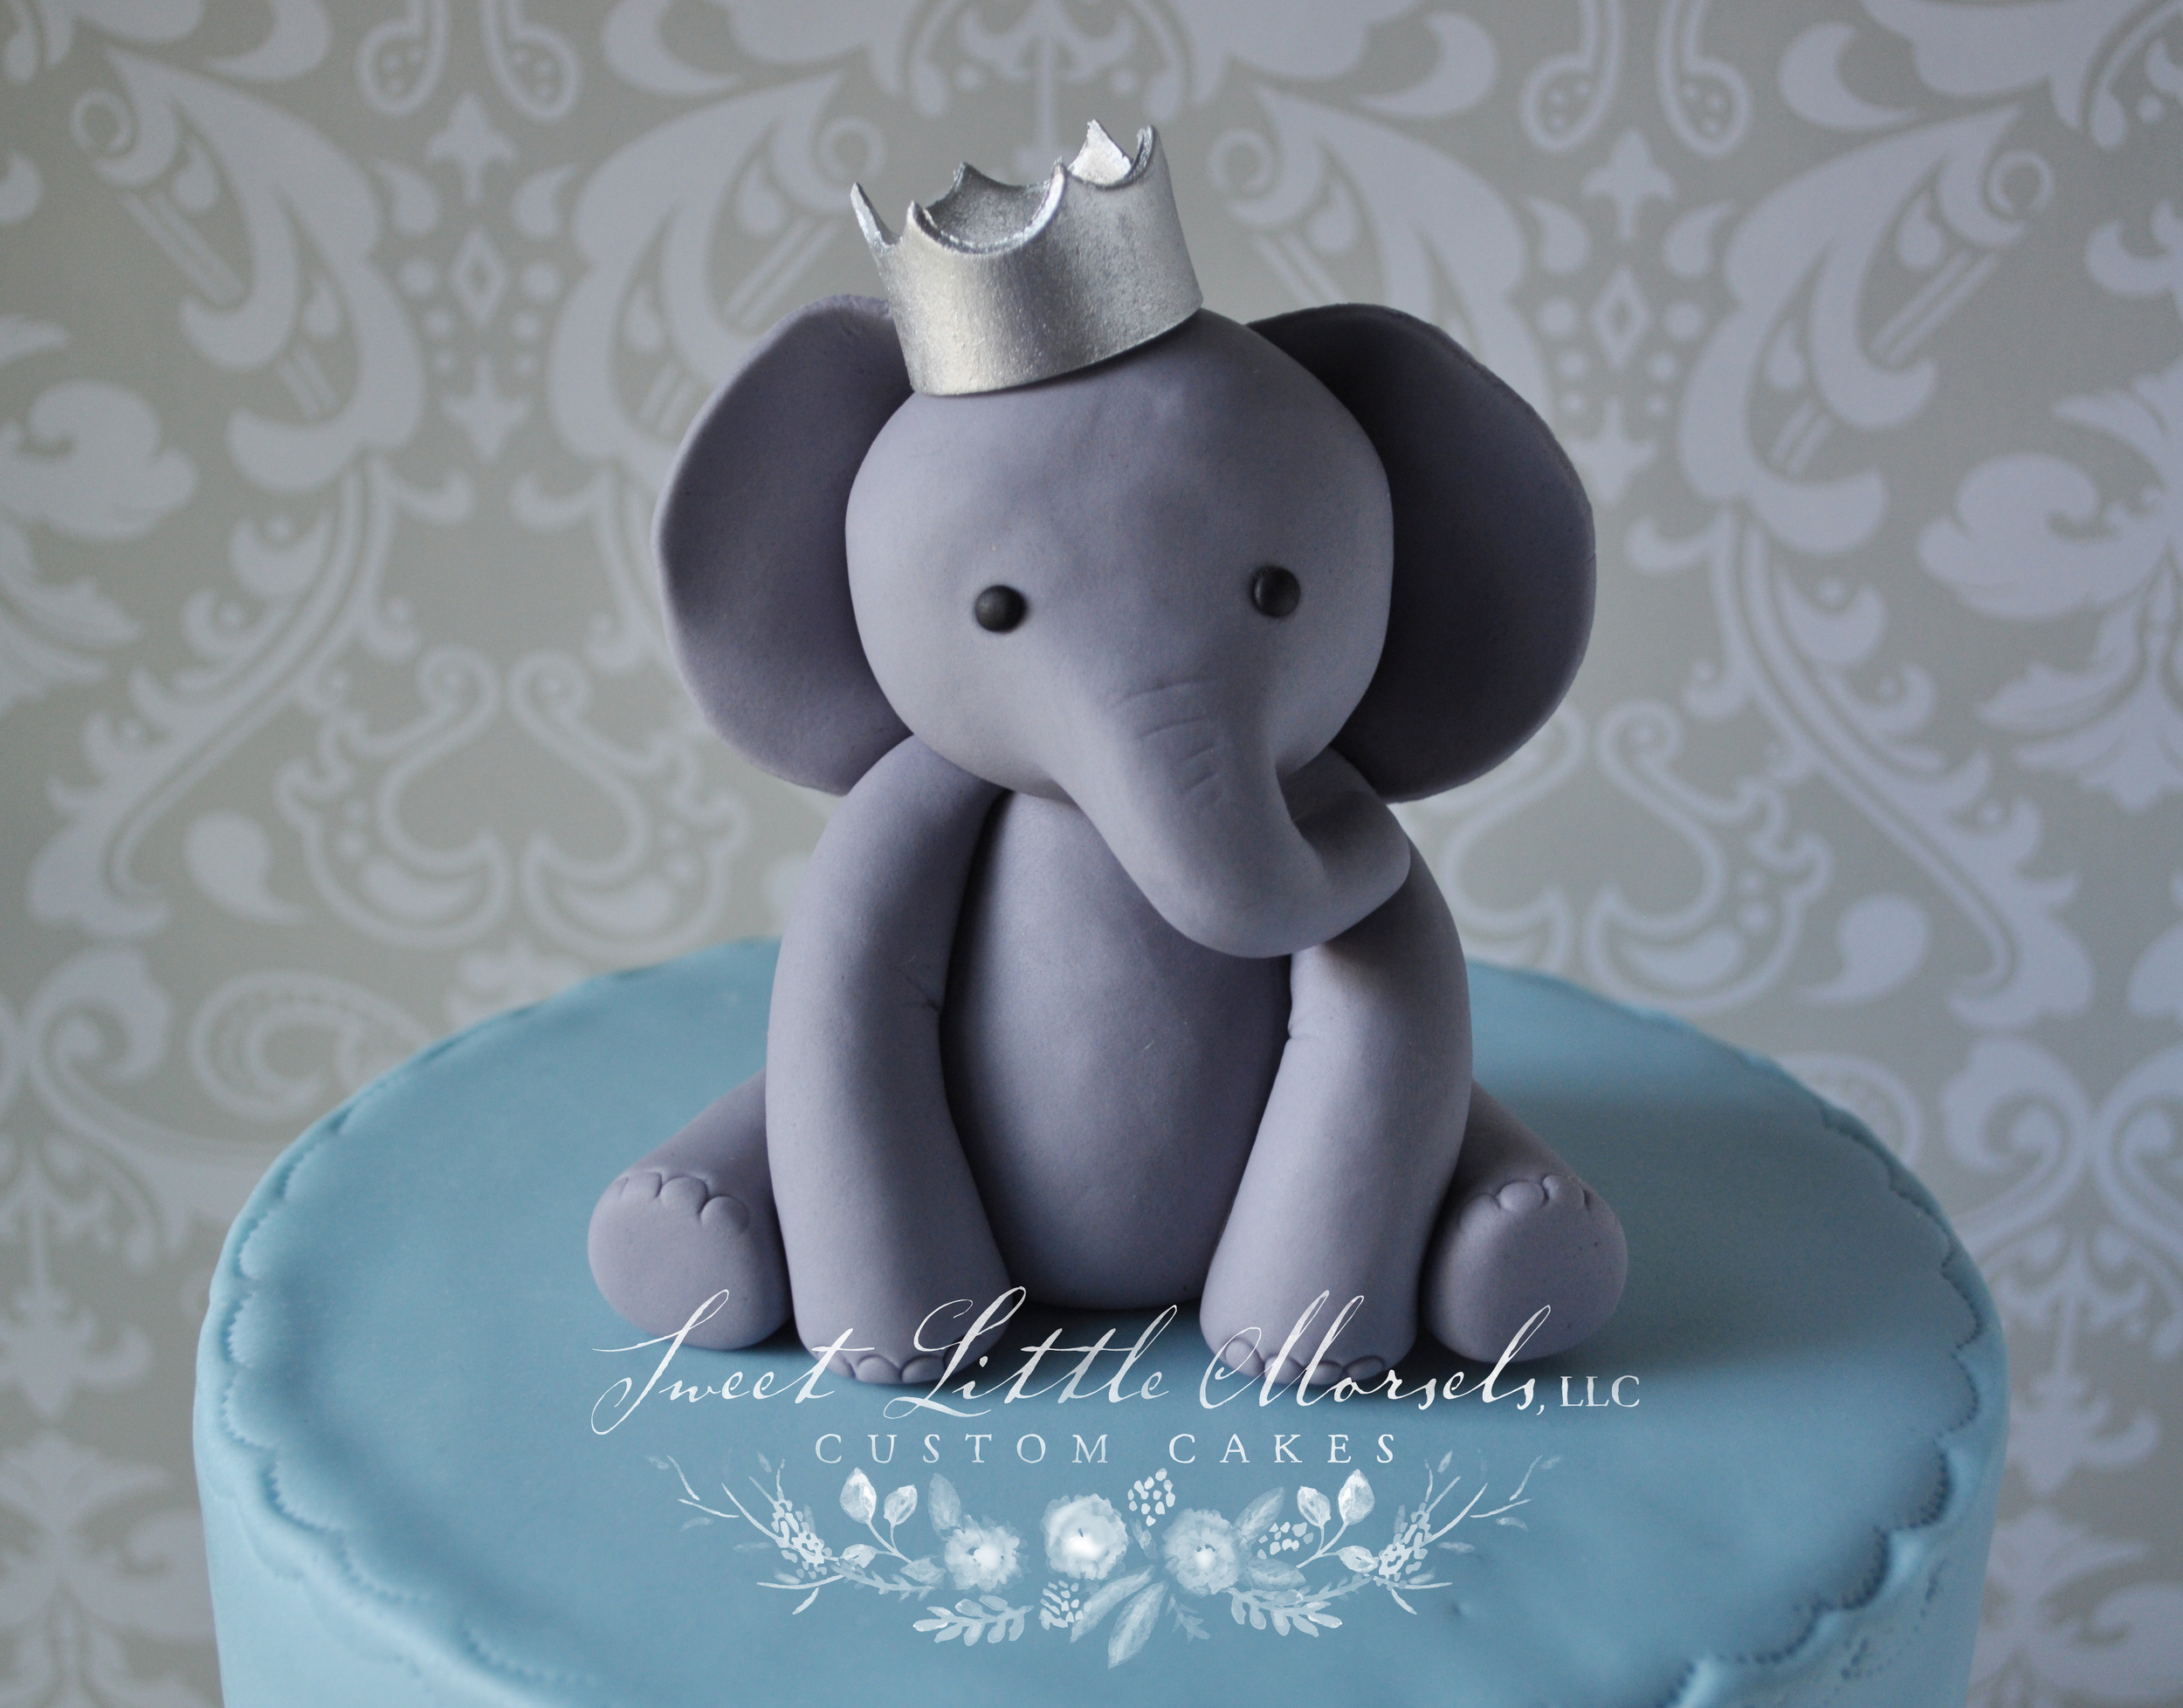 Baby Boy Elephant w Crown Cake Topper Sweet Little Morsels LLC